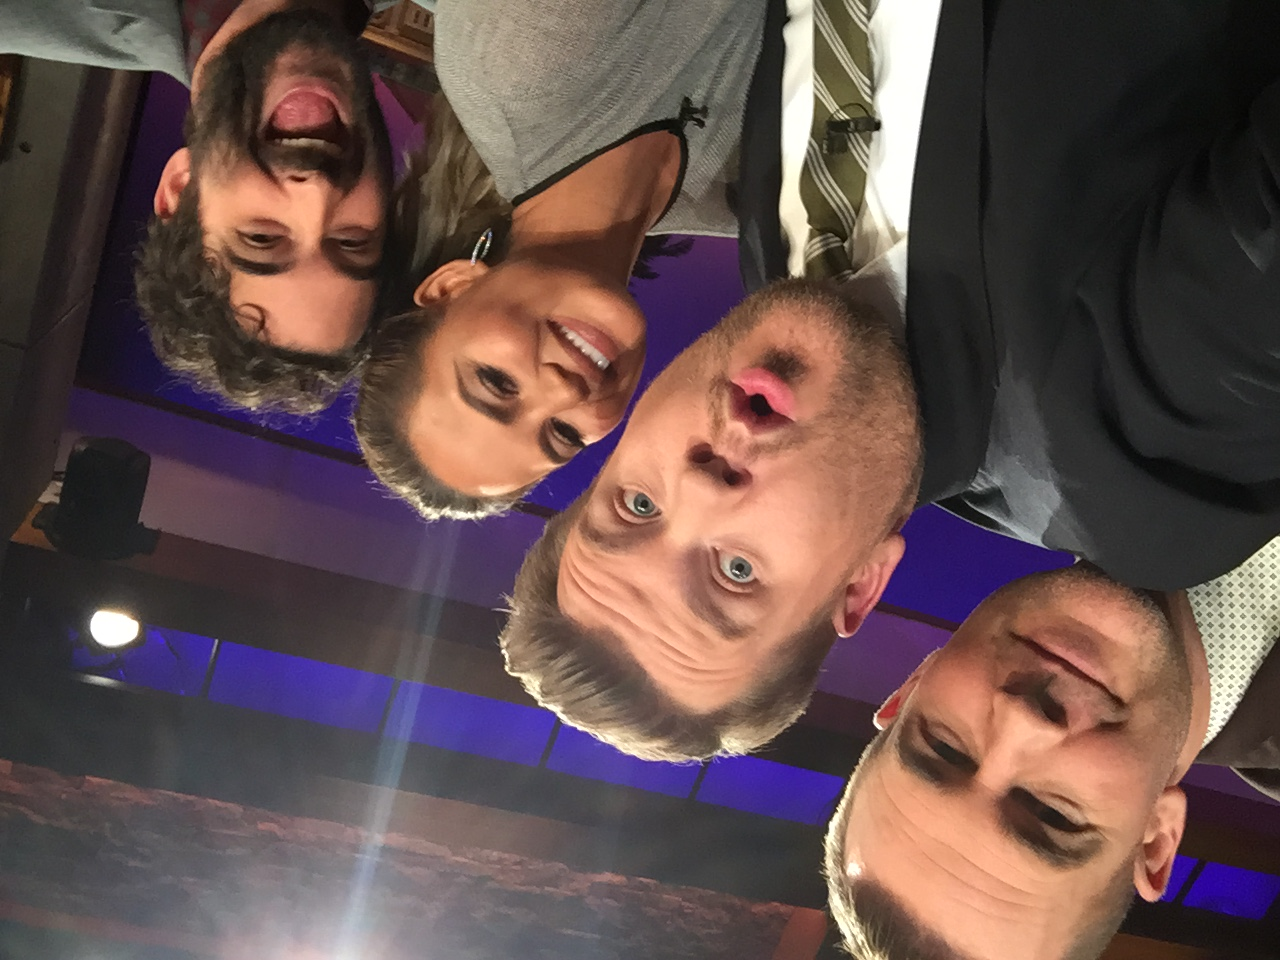 James Van Der Beek goes upside down with Chrissy Teigen and Jay Duplass